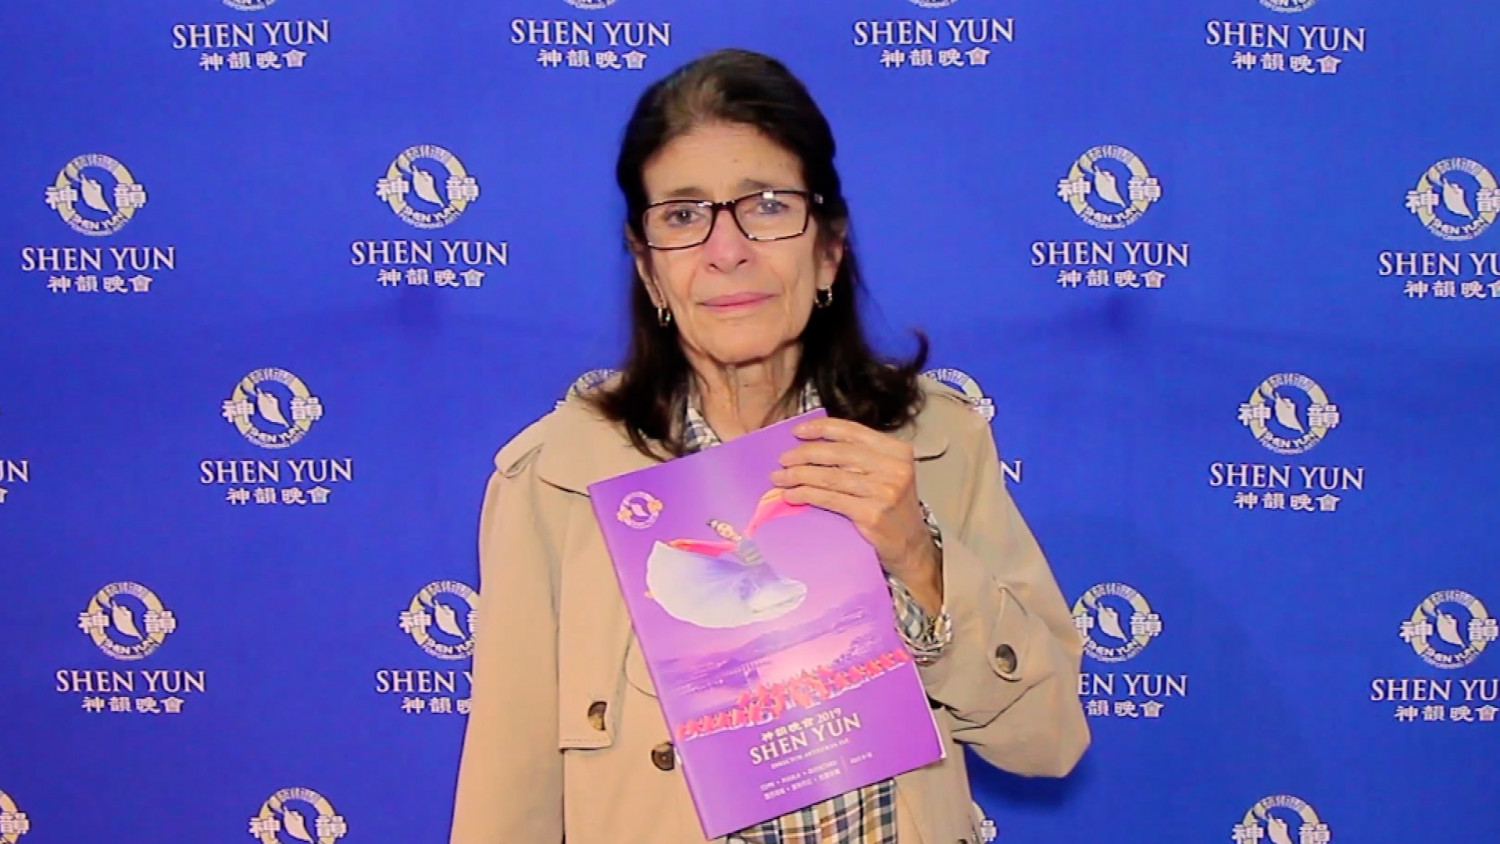 Shen Yun's Perfection 'Is Really Overwhelming': Mexican Actress Moved to Tears